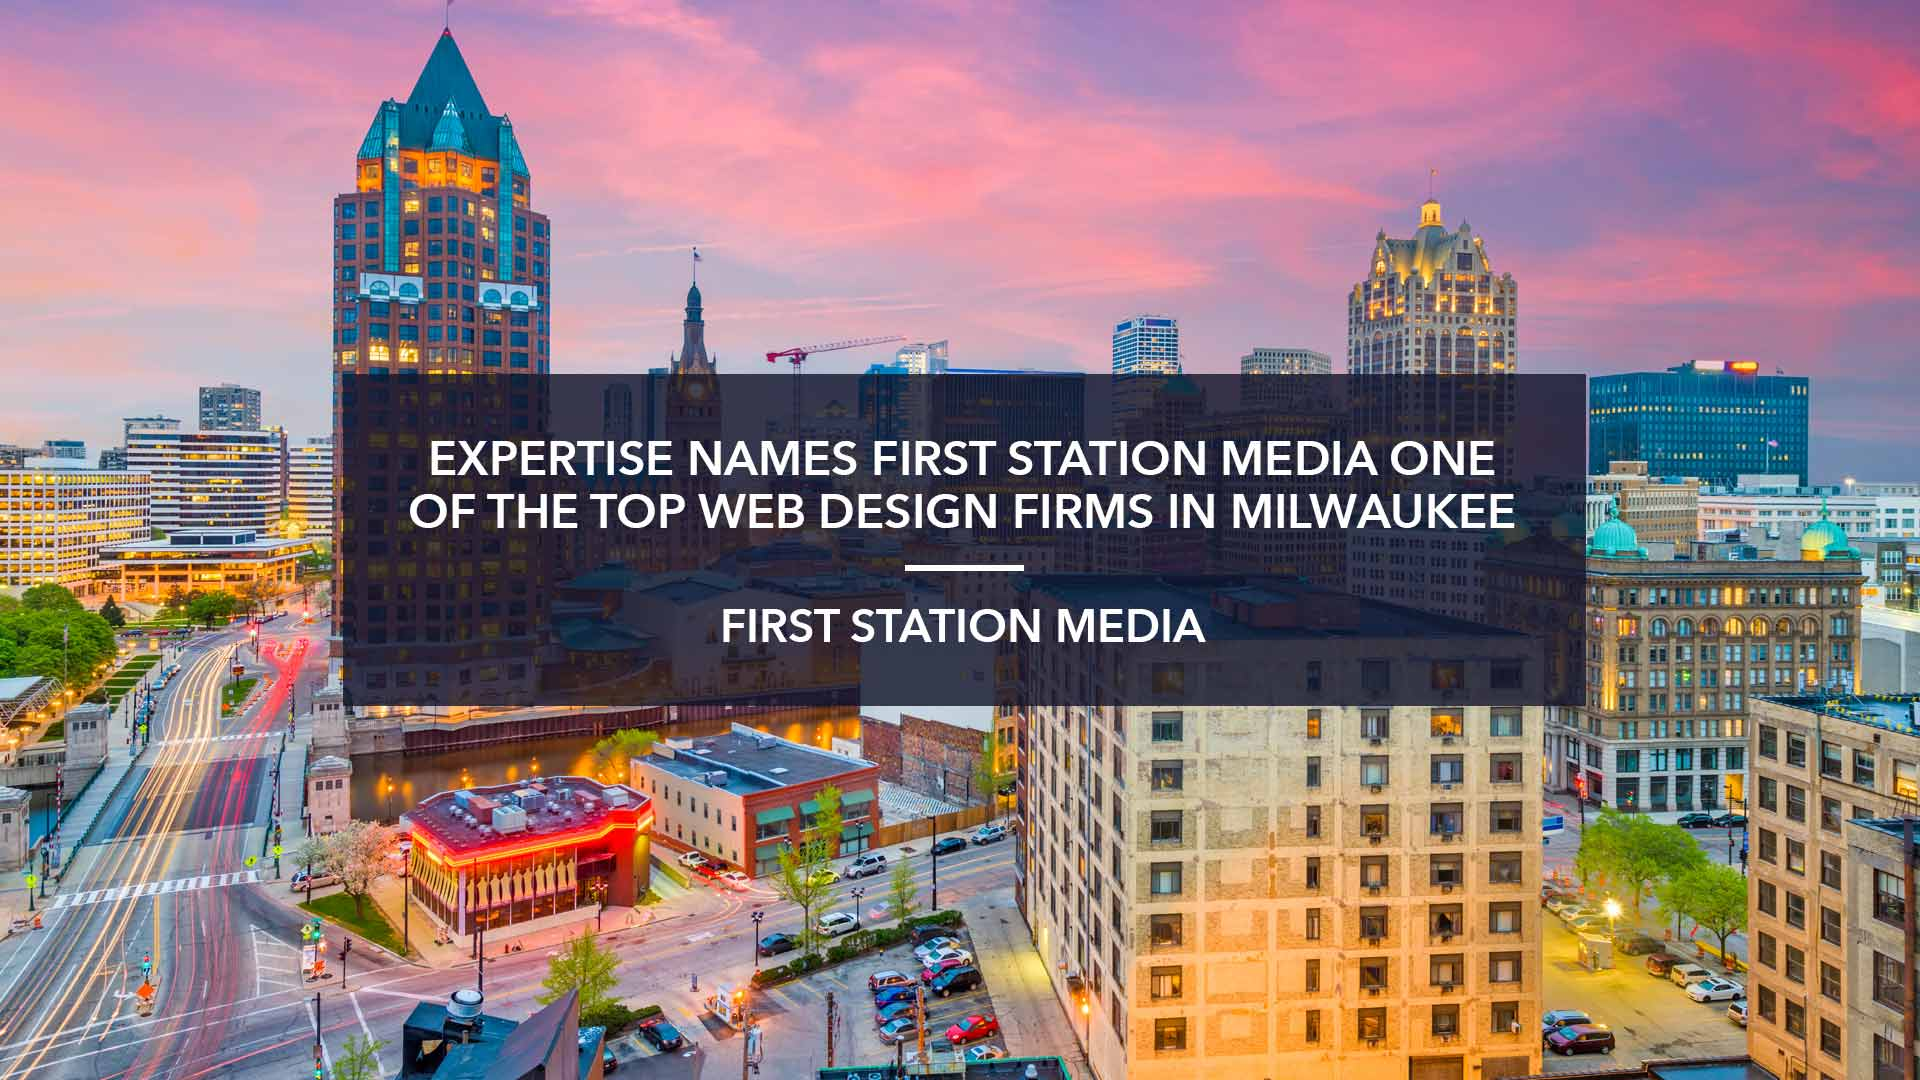 EXPERTISE NAMES FIRST STATION MEDIA ONE OF THE TOP WEB DESIGN FIRMS IN MILWAUKEE